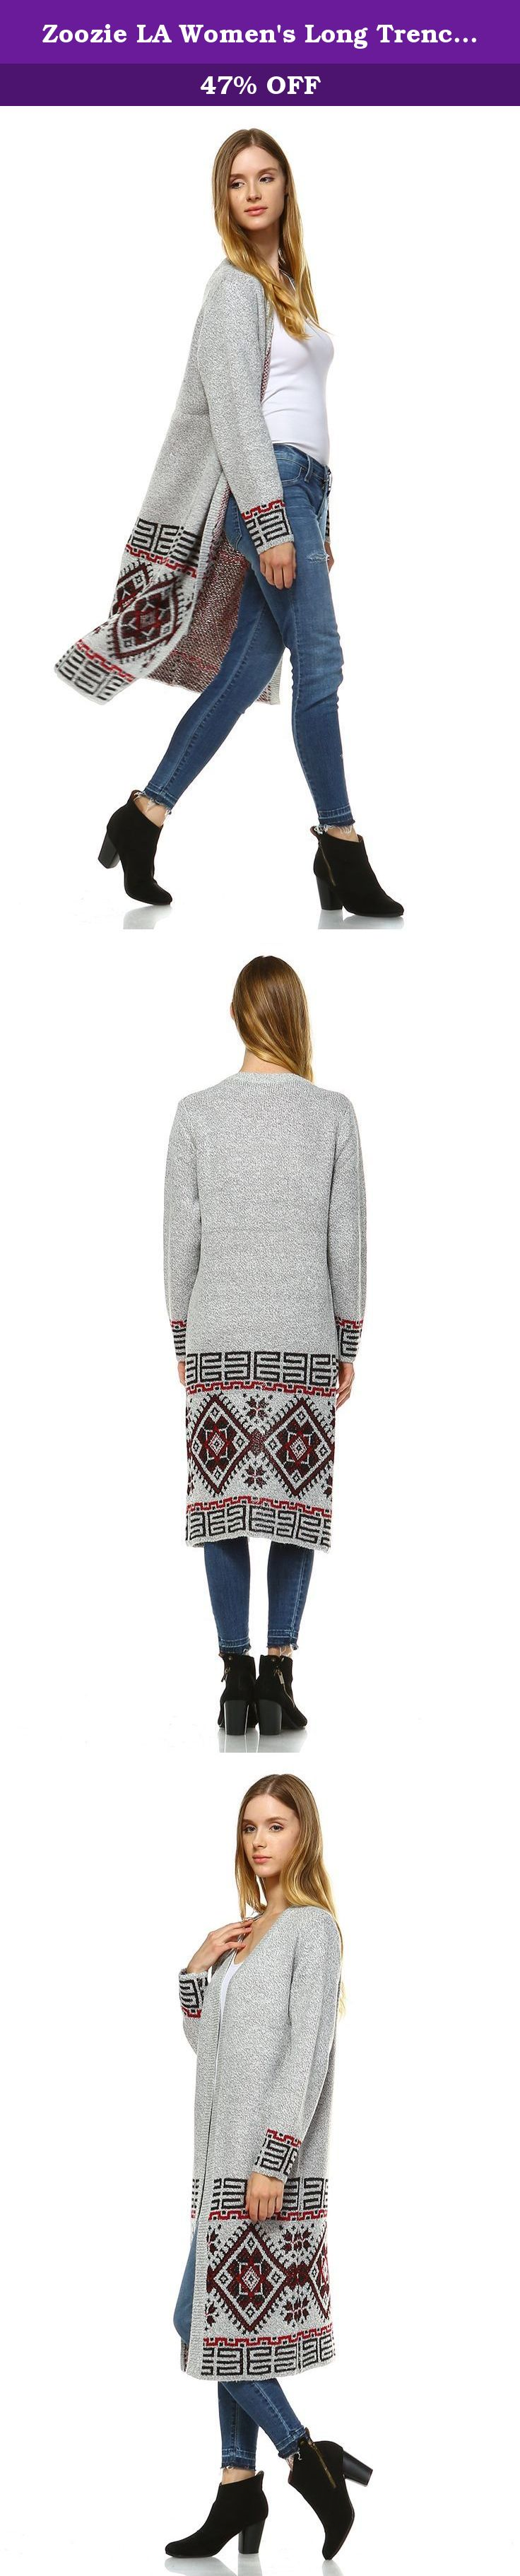 Zoozie LA Women's Long Trench Aztec Cardigan Tribal Sweater Border Gray M/L. 100% Brand New with Tags; Premium fabric used only; Aztec Border and Holiday Isle colors are made of Acyrlic and Nylon; Aztec Diamonds, Harrys Geometric Aztec, are made of Acyrlic. High Slit color is made of Polyester. Extra long length for a extra fashionable flare; Looks great in pictures but even better in person! This cardigan sweater is with boyfriend sweater design so it runs large. If you normally wear a...